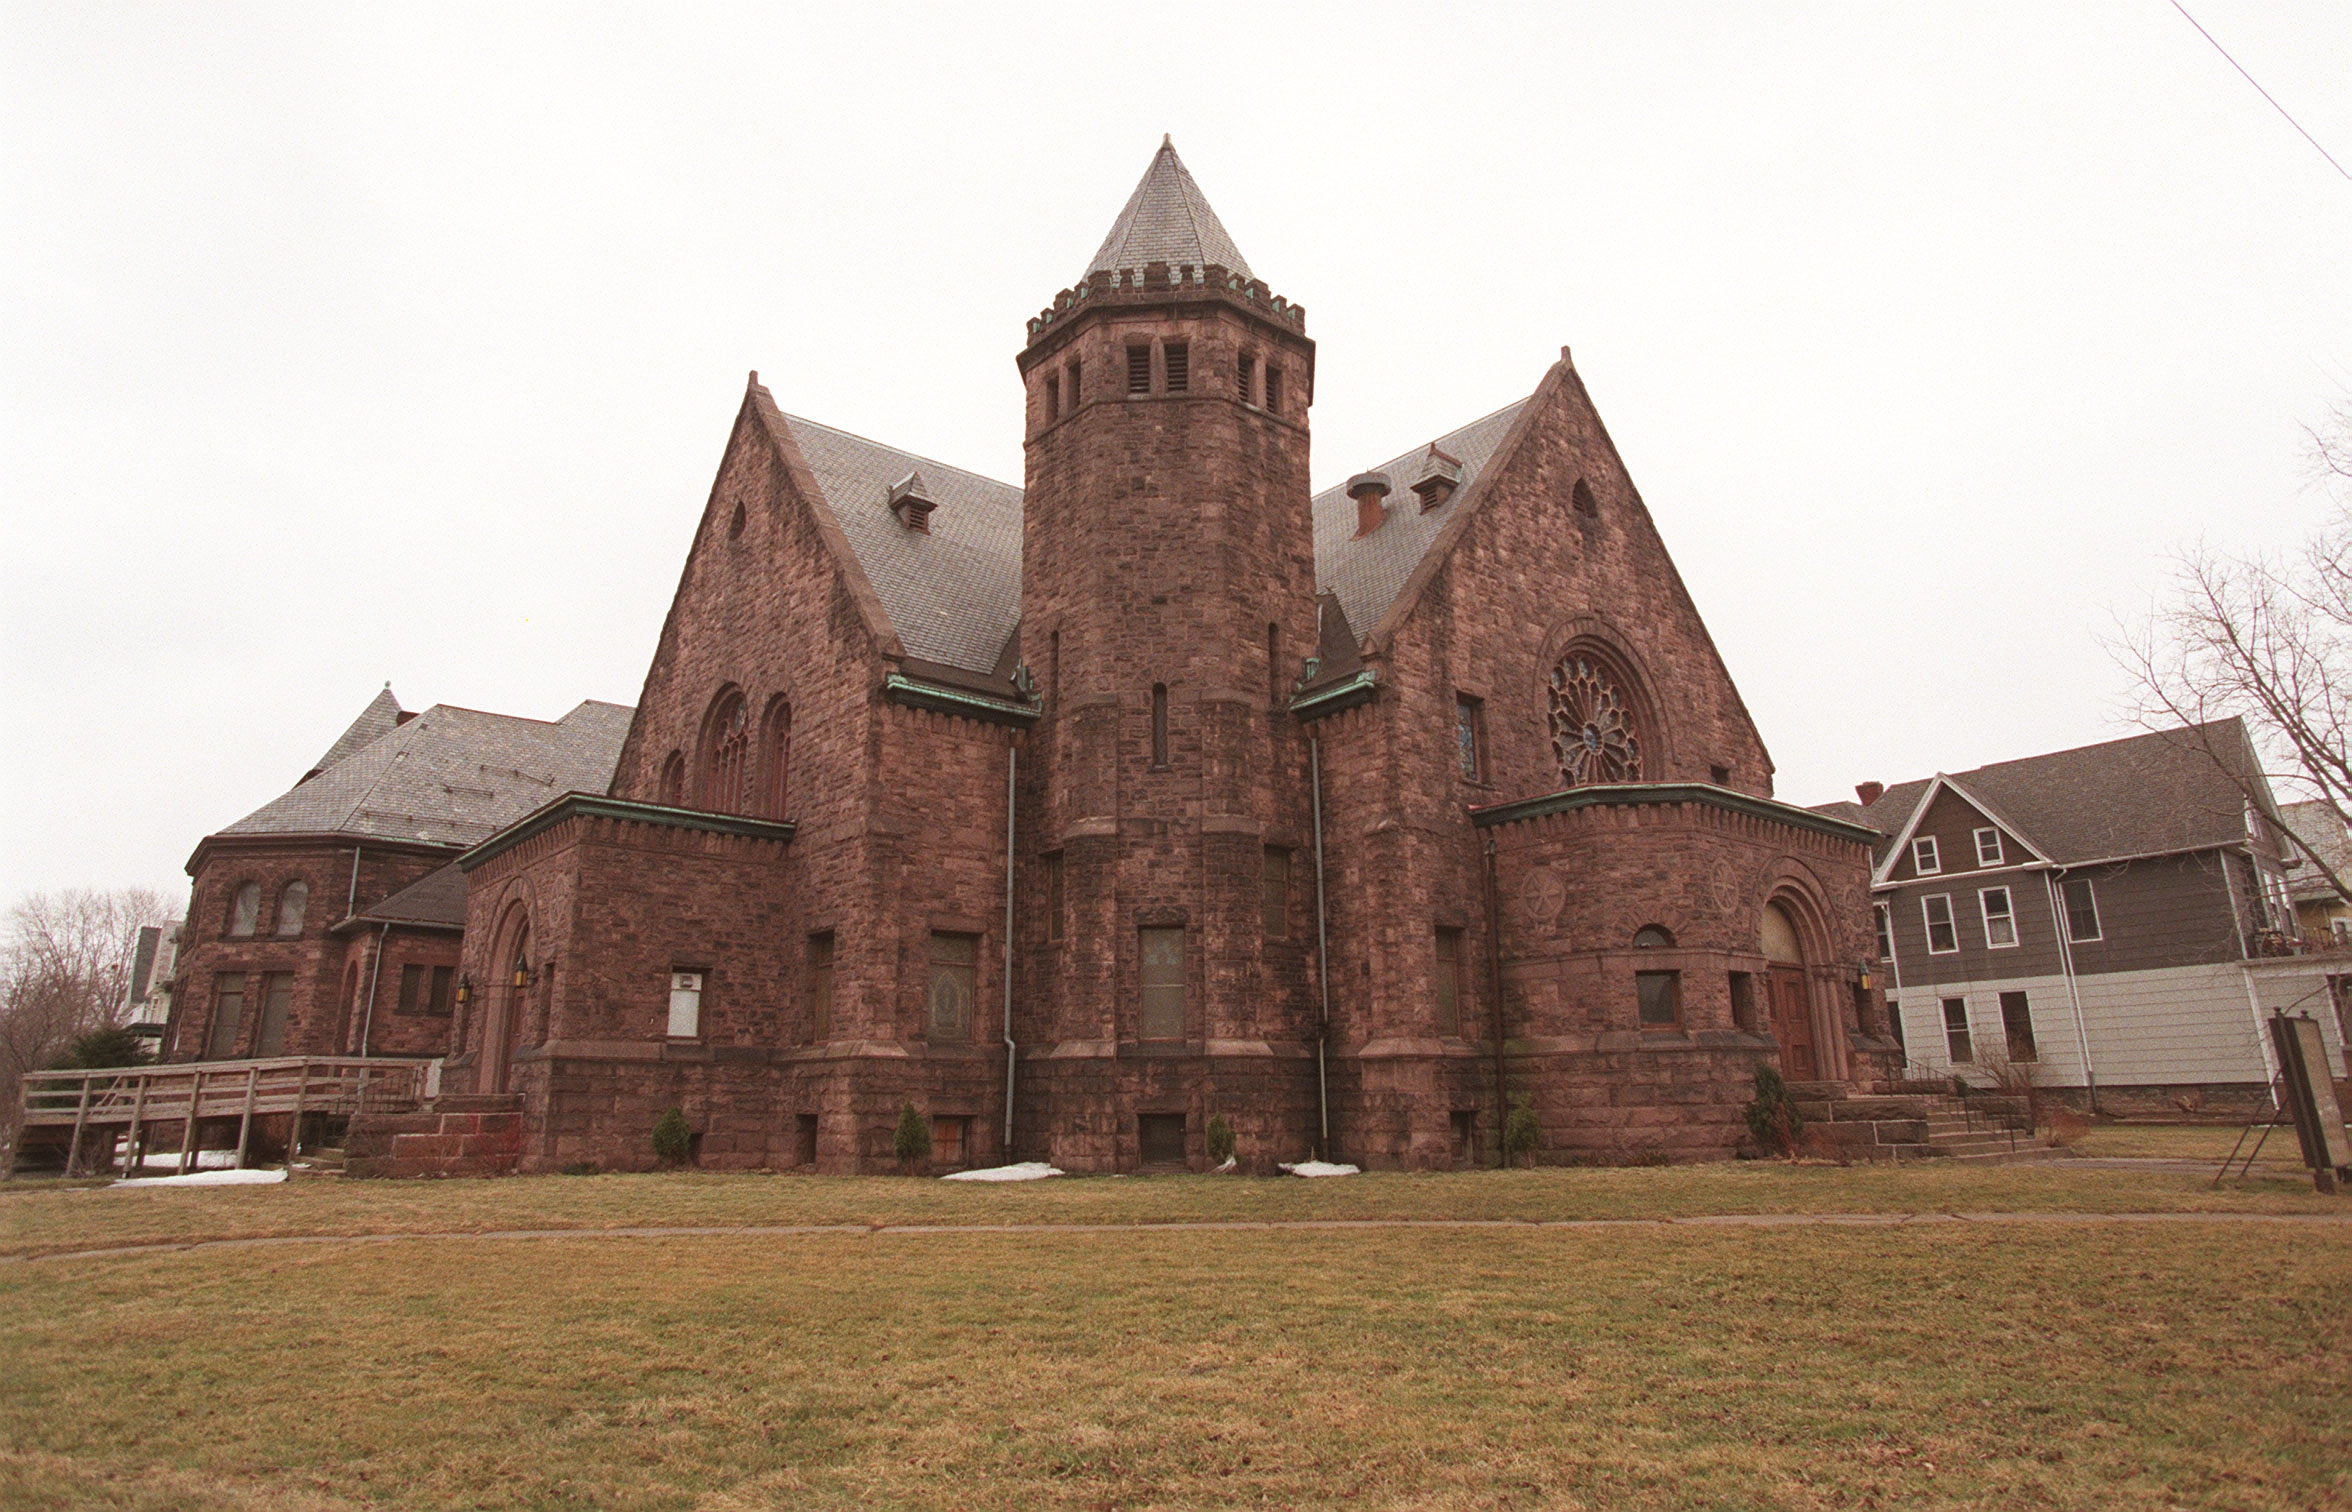 The Planning Board approved conversion of former Richmond Avenue Methodist-Episcopal Church into an arts center.